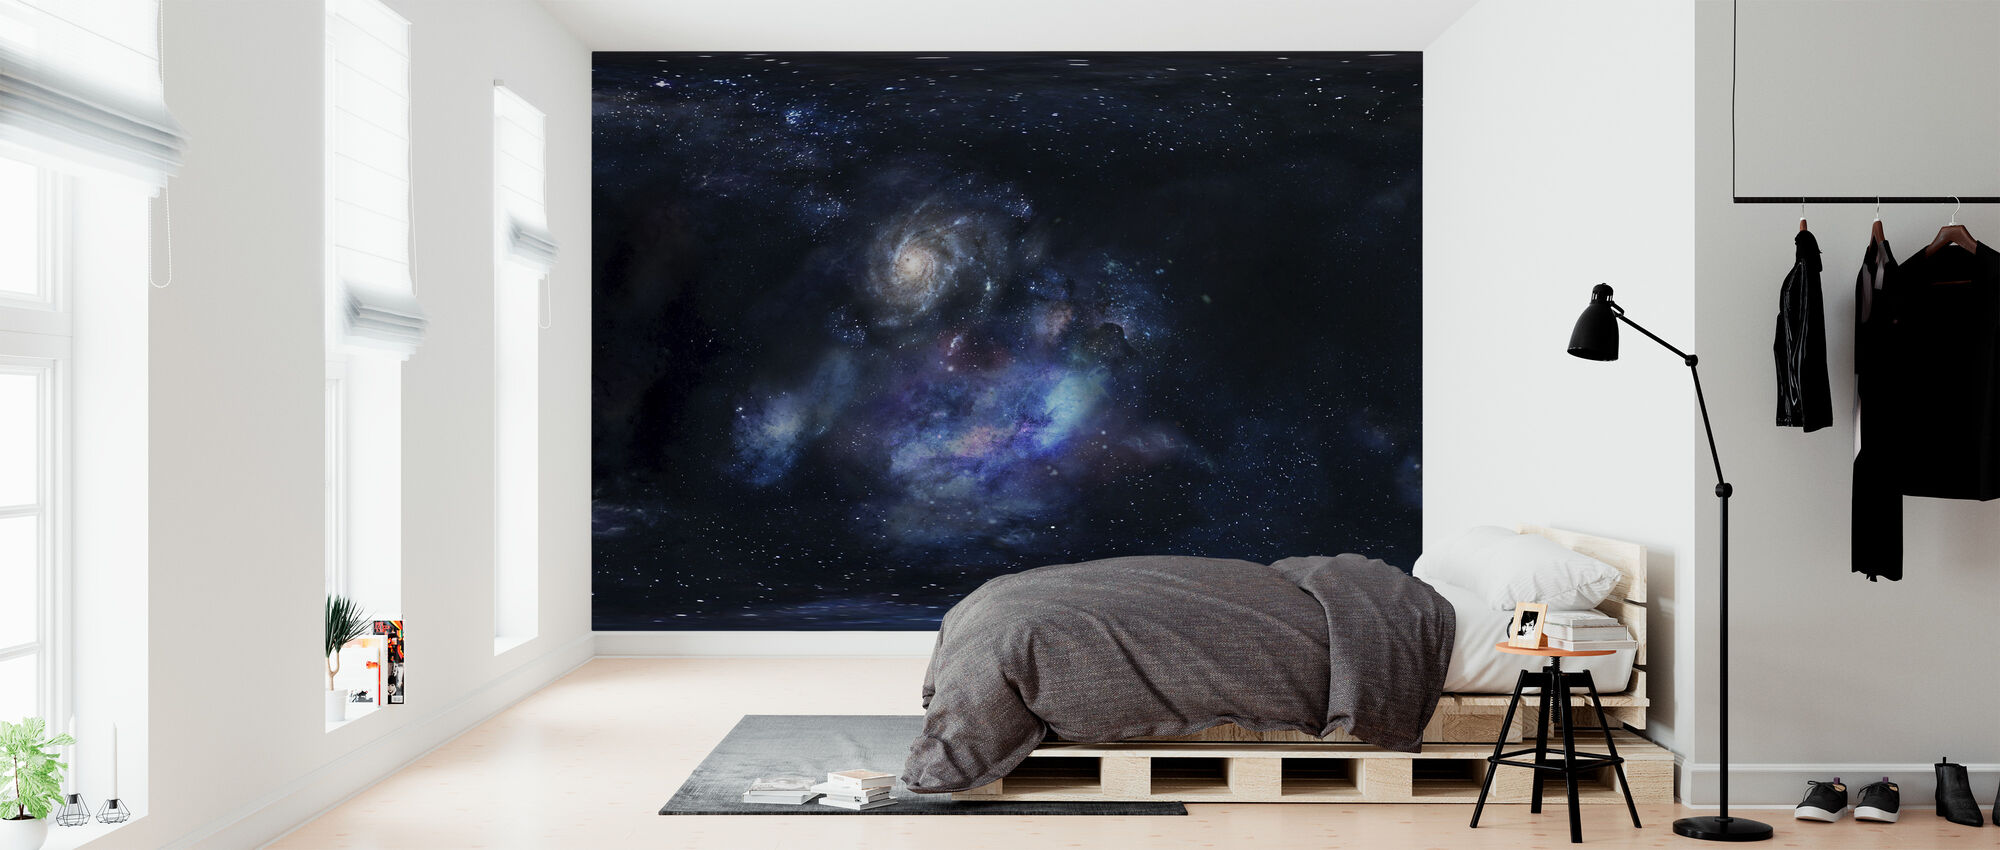 Outer Space - Wallpaper - Bedroom